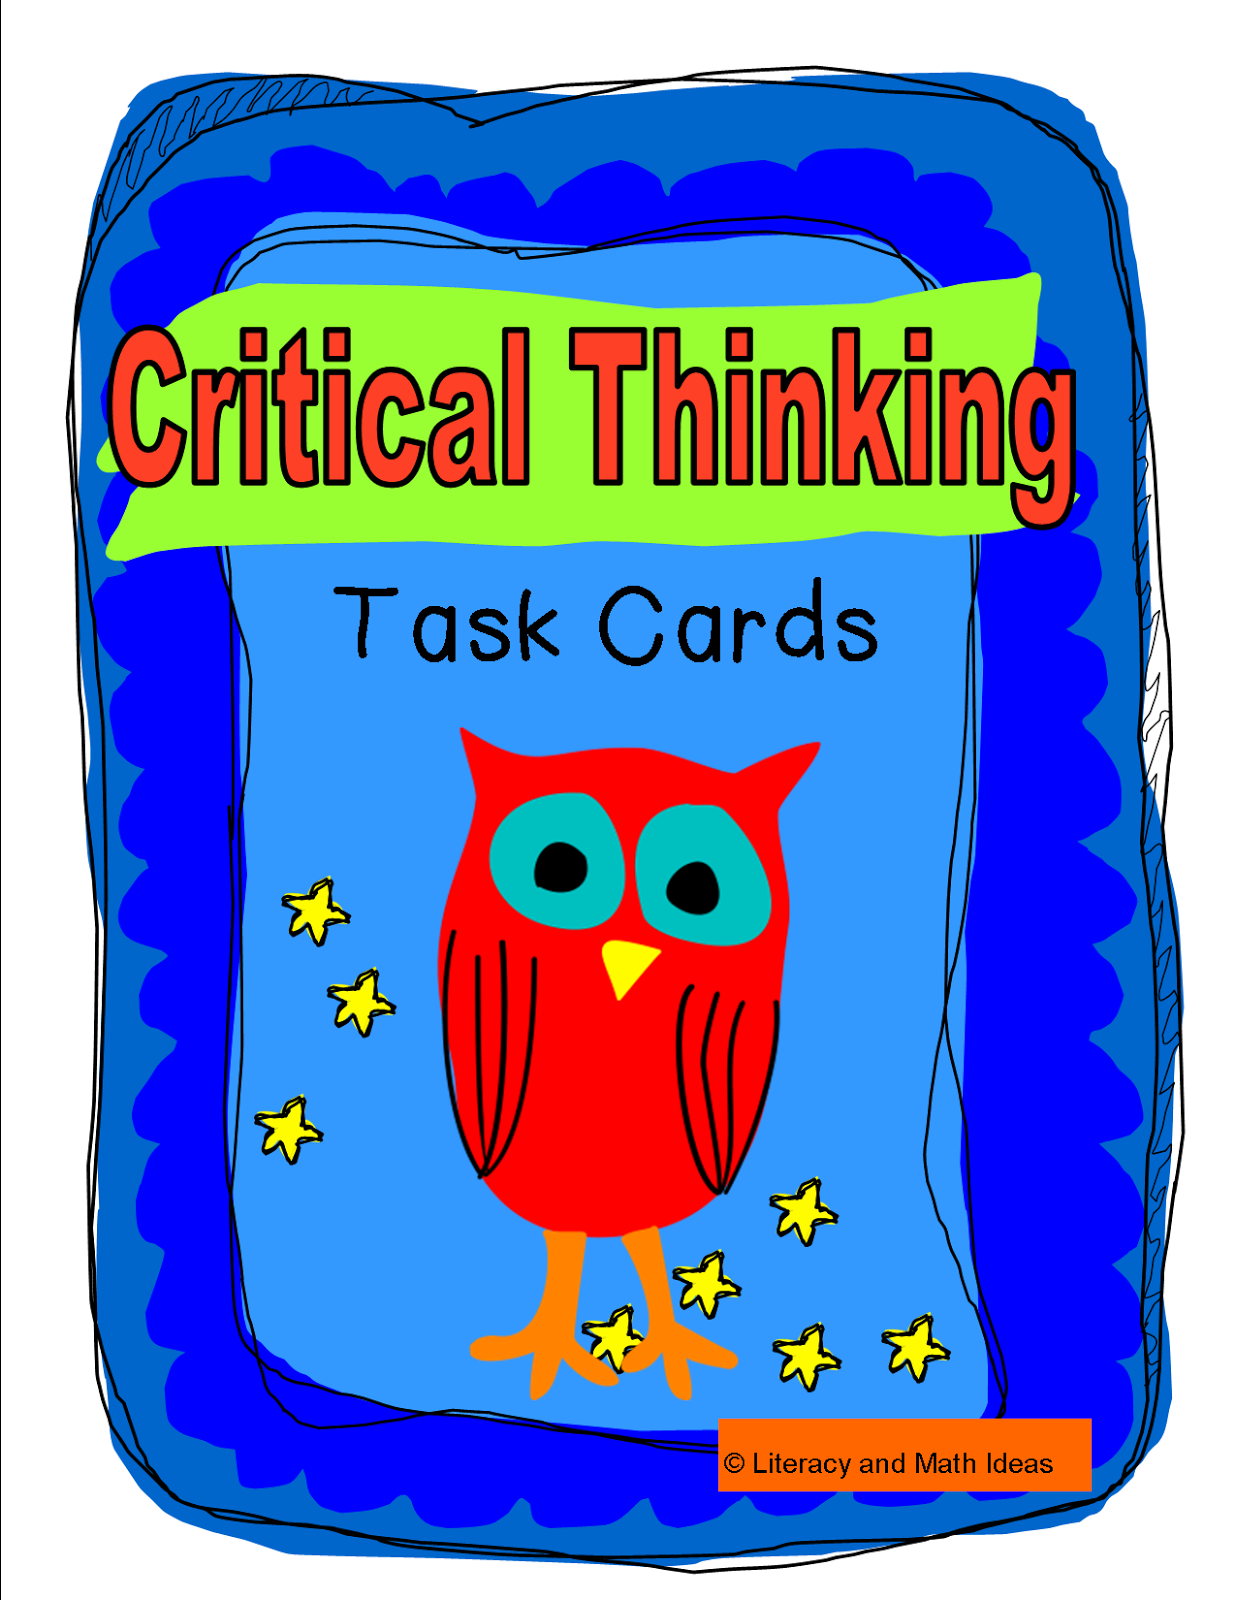 Developing Critical Thinking Skill in Mathematics Education